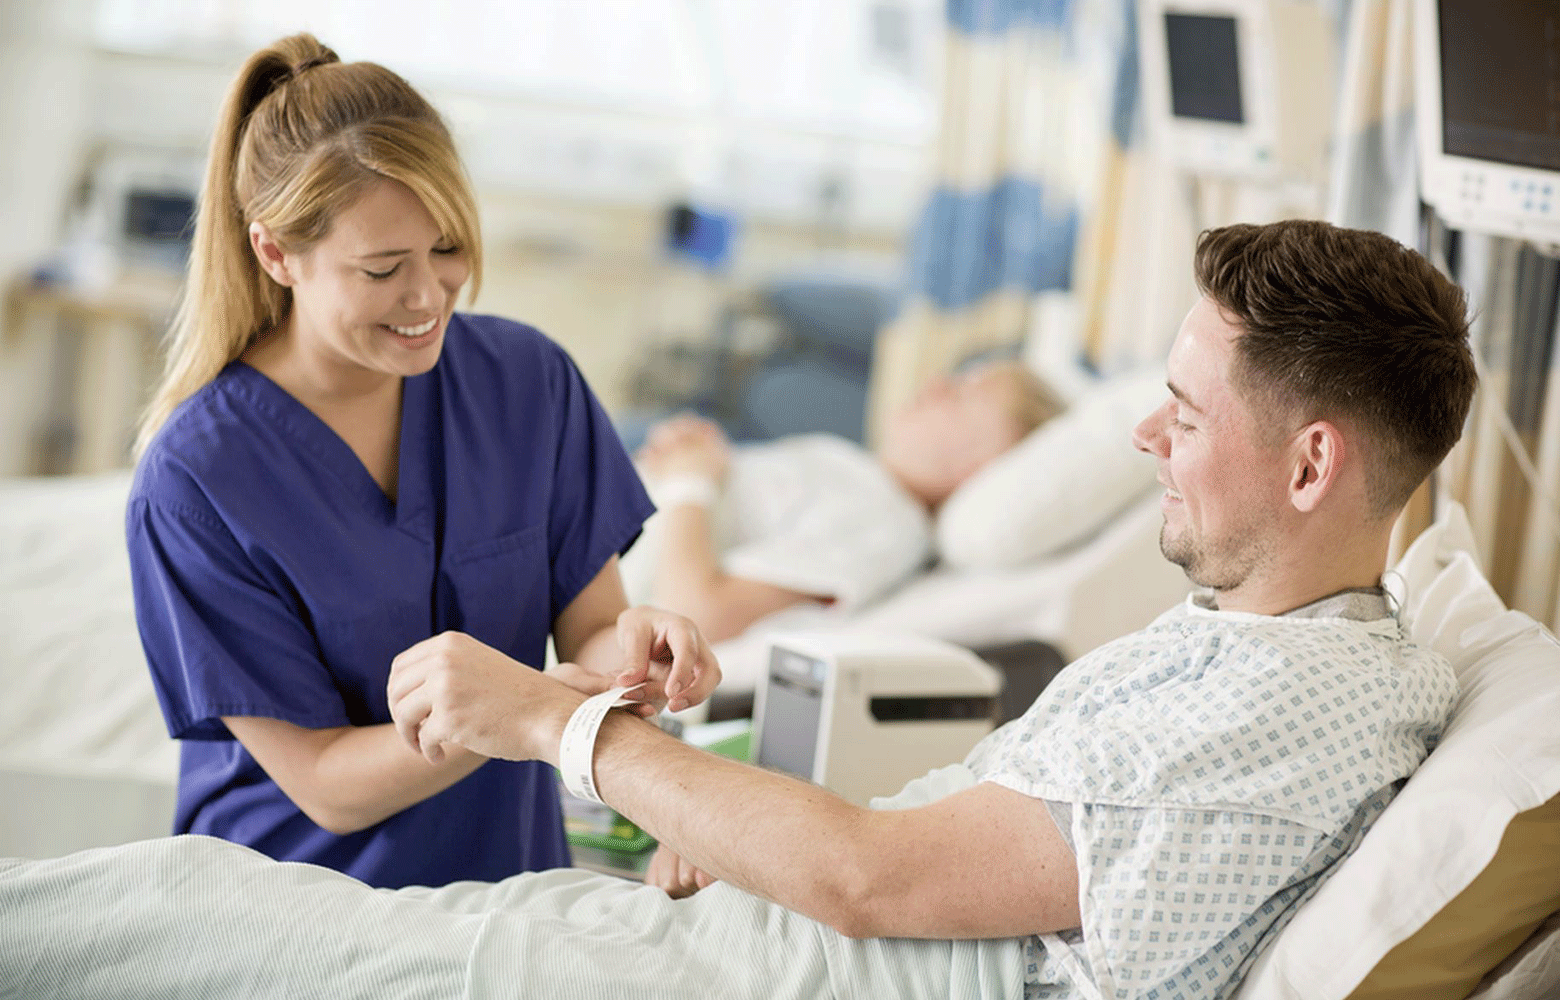 Nurse putting wristband on male patient with TD printer